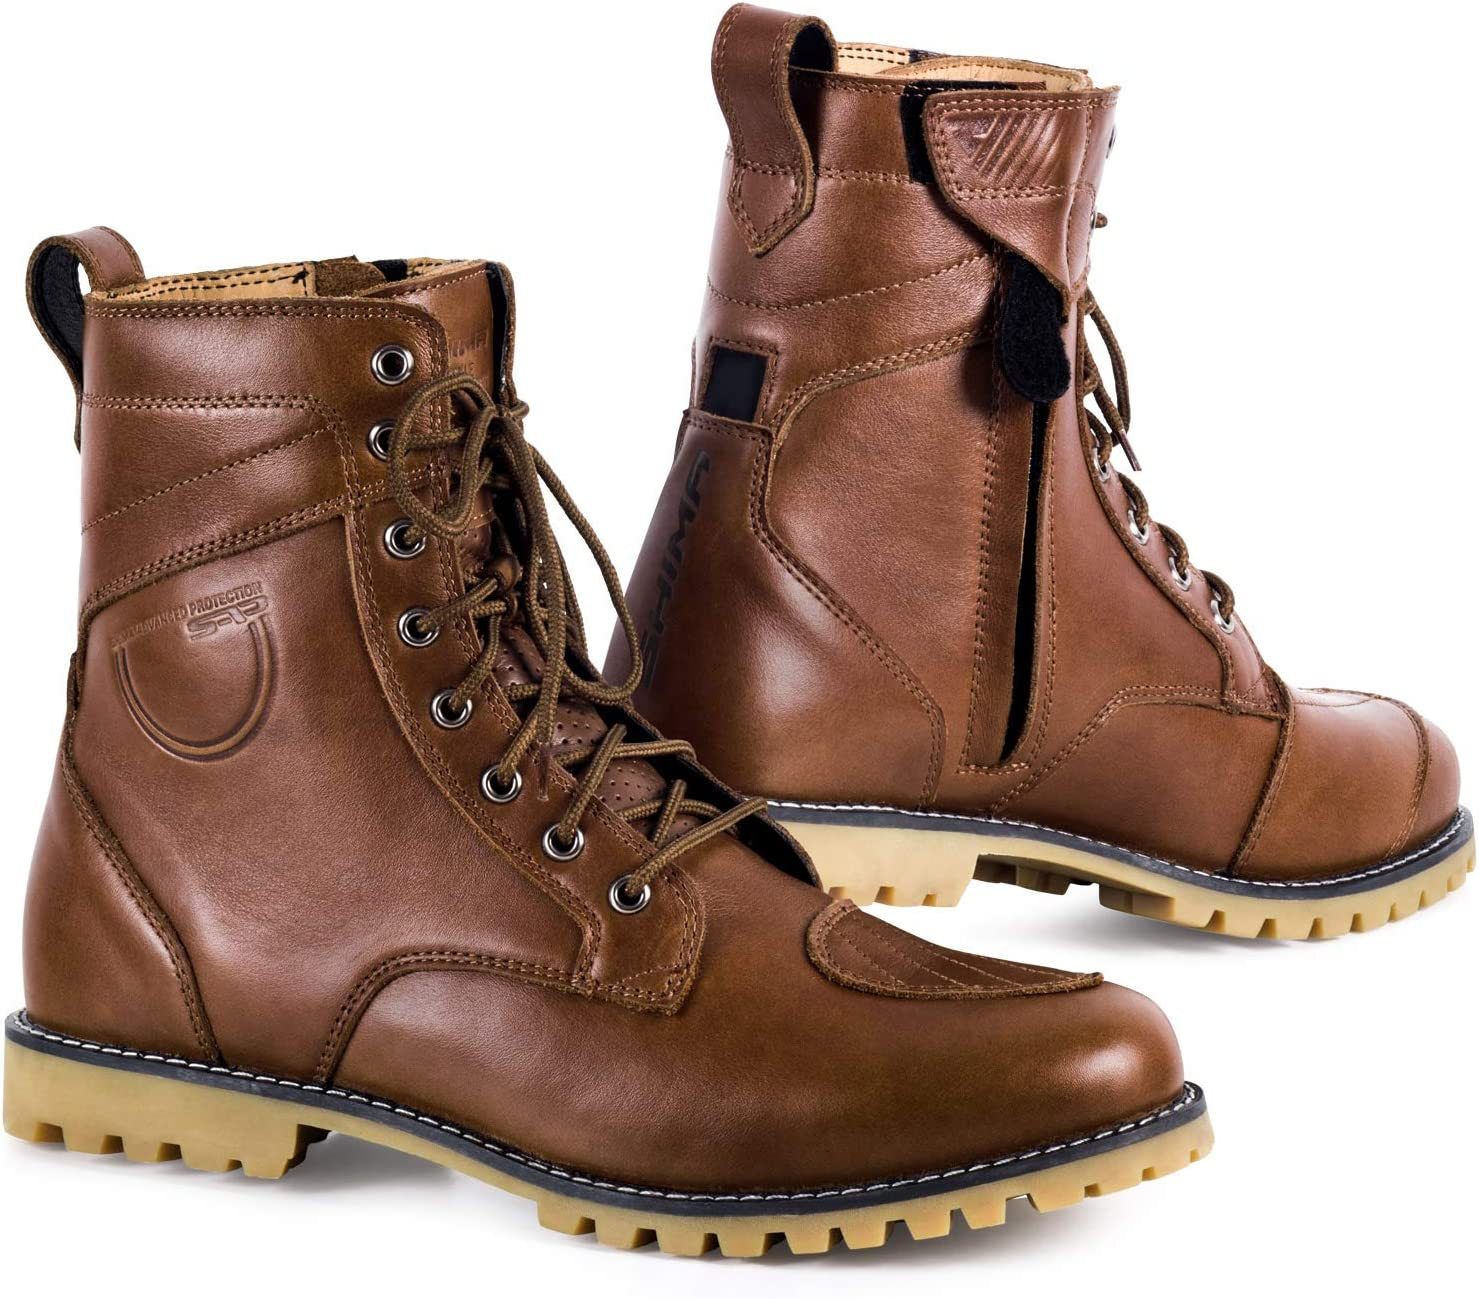 SHIMA THOMSON San Antonio Finally popular brand Mall Motorcycle Boots for Reinforced Leather Men